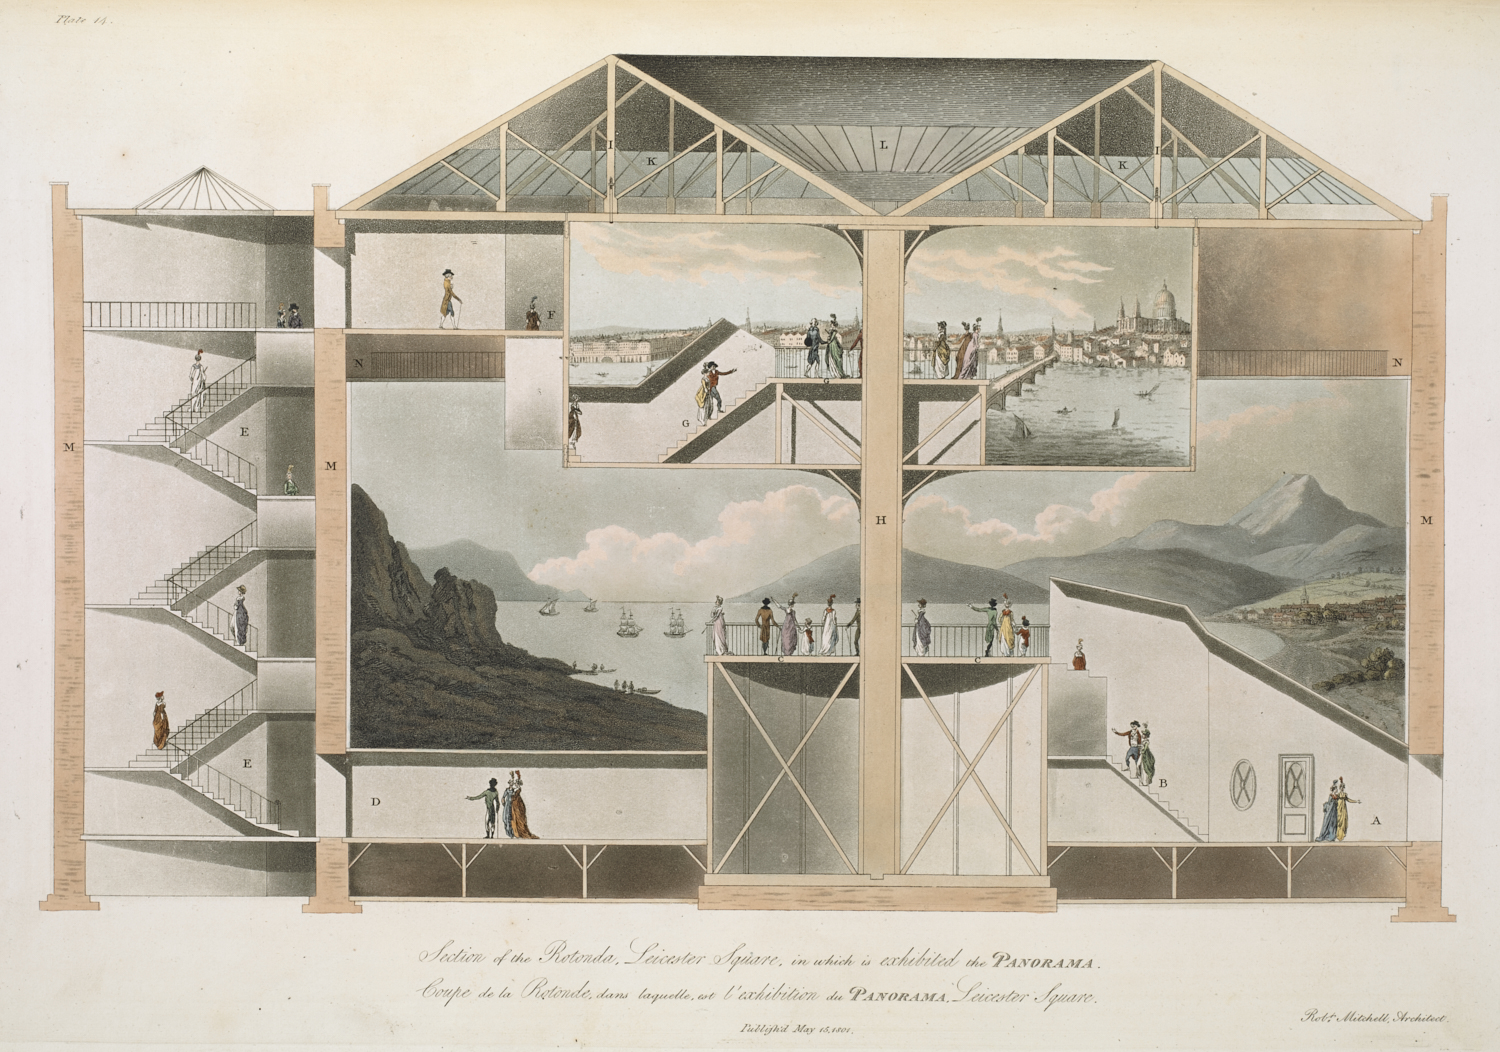 Robert Mitchell (active around 1782-1809), Section of the Rotunda, Leicester Square, in which is exhibited the Panorama, London, 15 May 1801, etching and aquatint, 31.8 x 45.5 cm, published as plate 14 in Plans, and views in perspective, with descriptions of buildings erected in England and Scotland; and ... an essay to elucidate the Grecian, Roman and Gothic Architecture, London: The Oriental Press, Wilson & Co, 1801, 56.i.12. (plate 14)